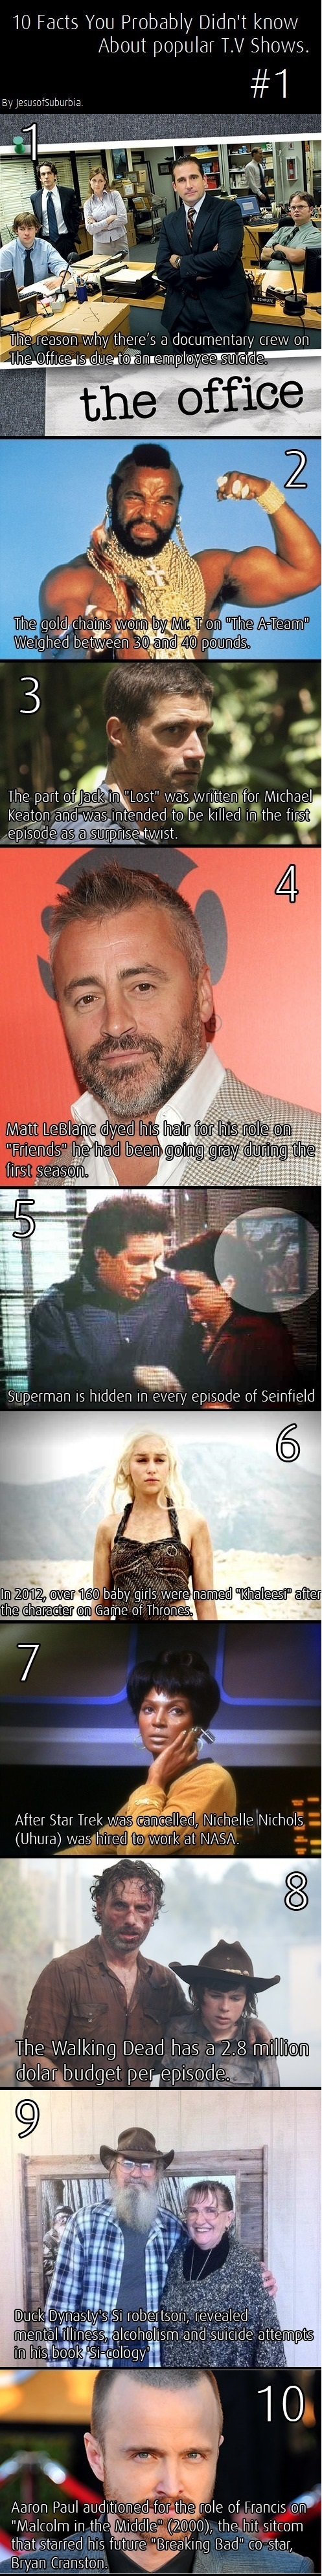 funny-picture-tv-shows-interesting-facts